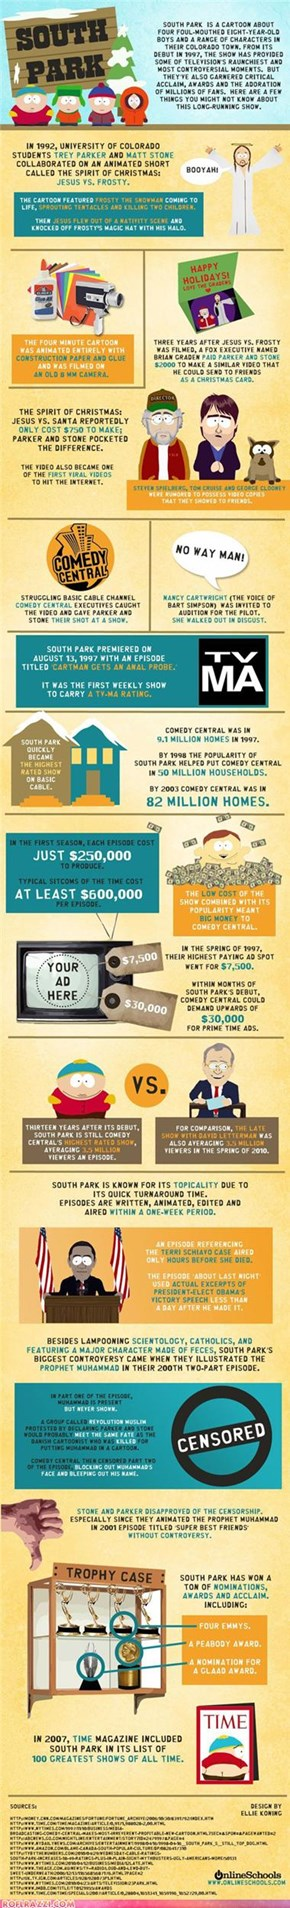 South Park: The Infographic